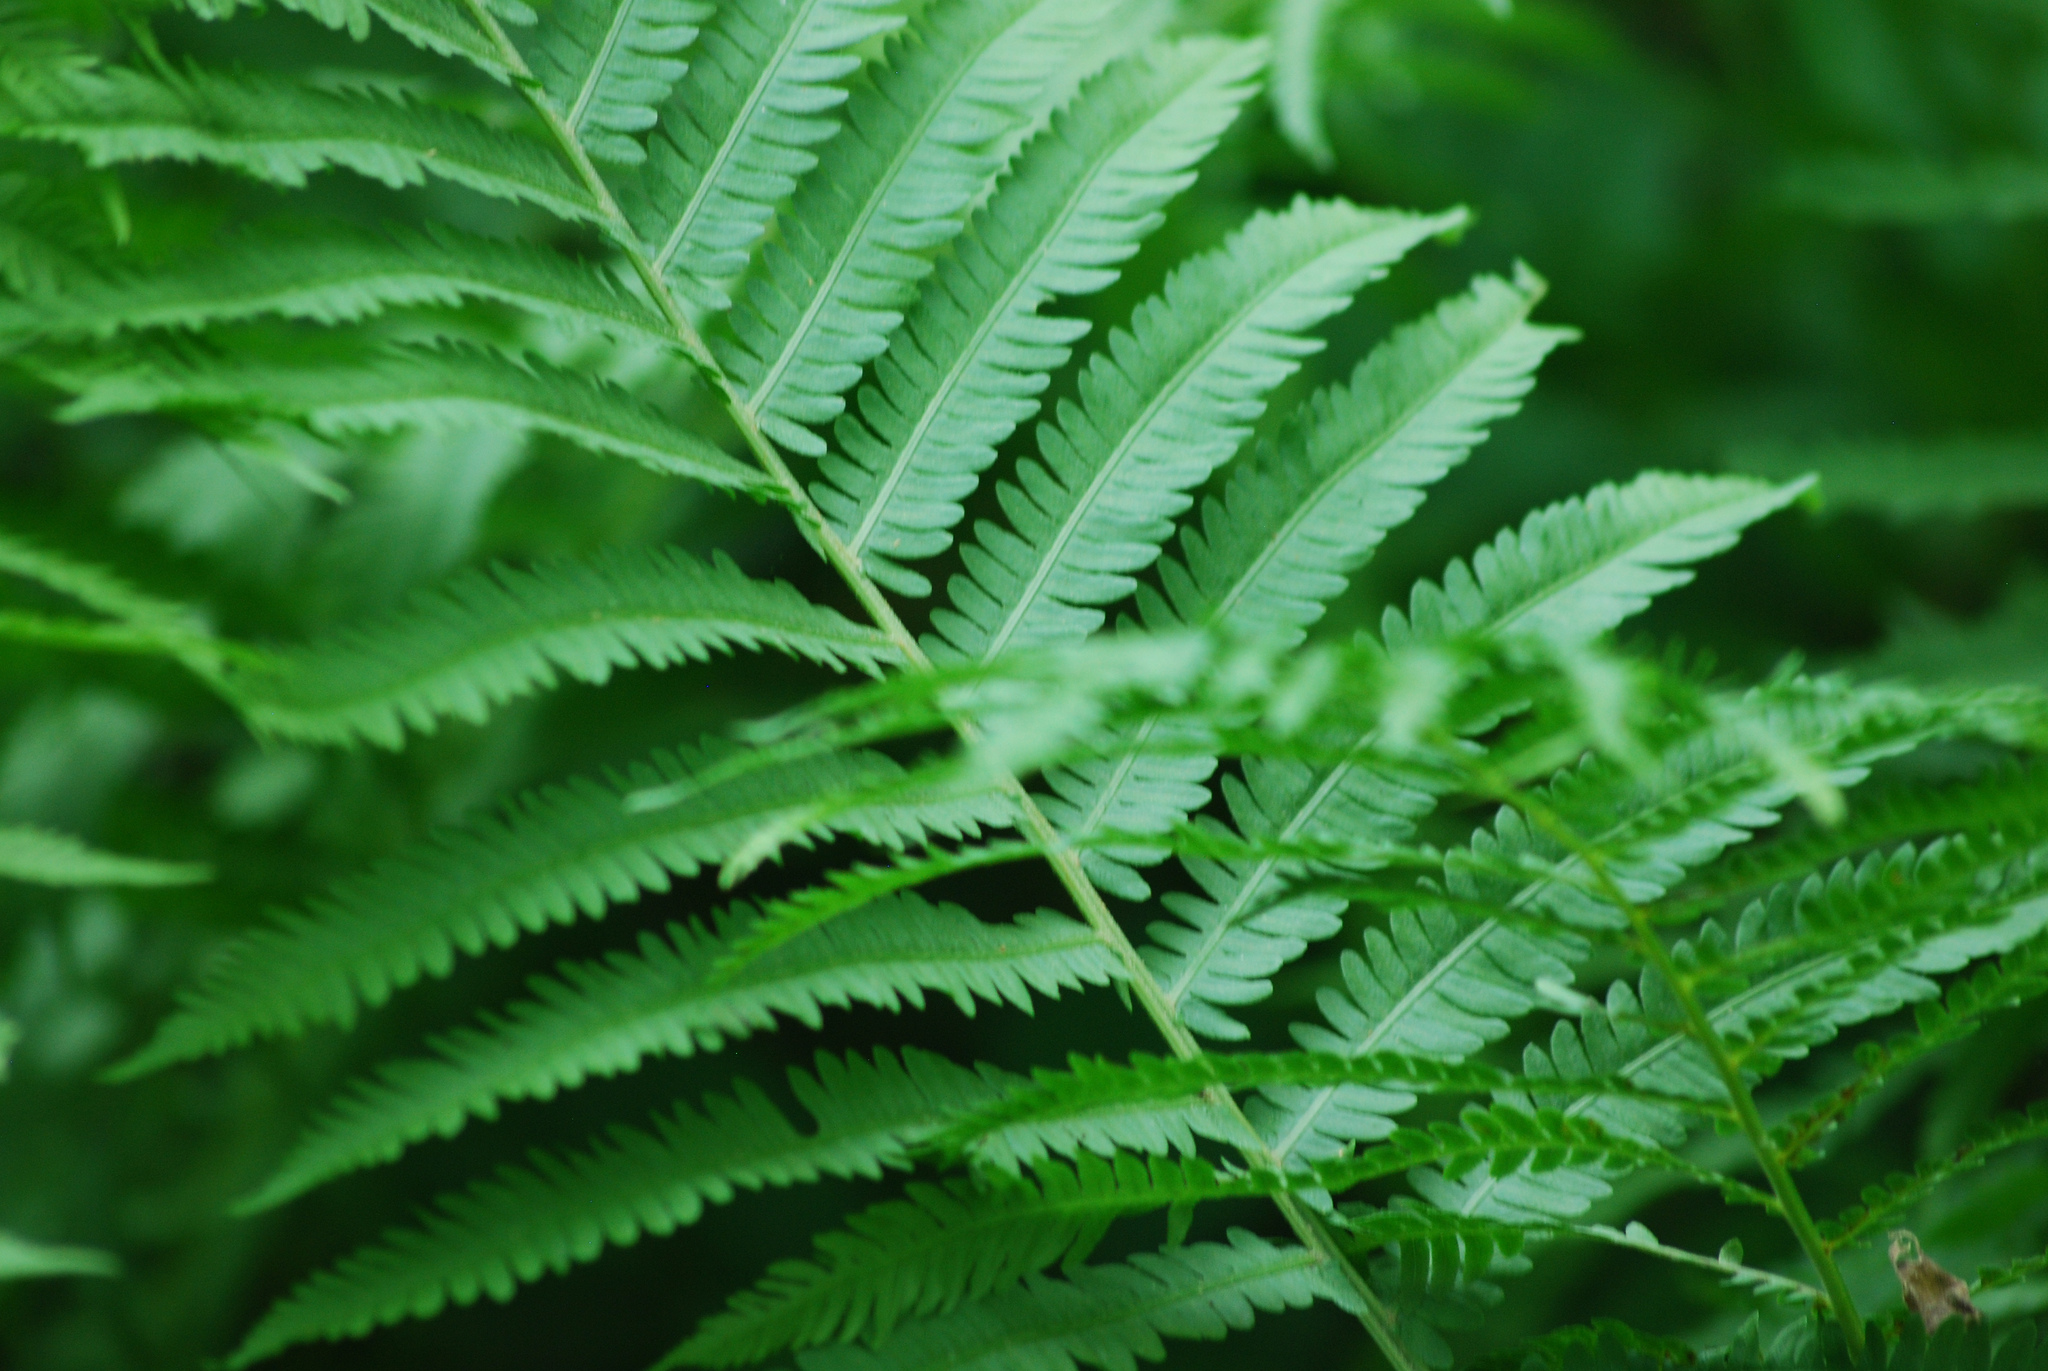 Fern-Inspired Energy Storage